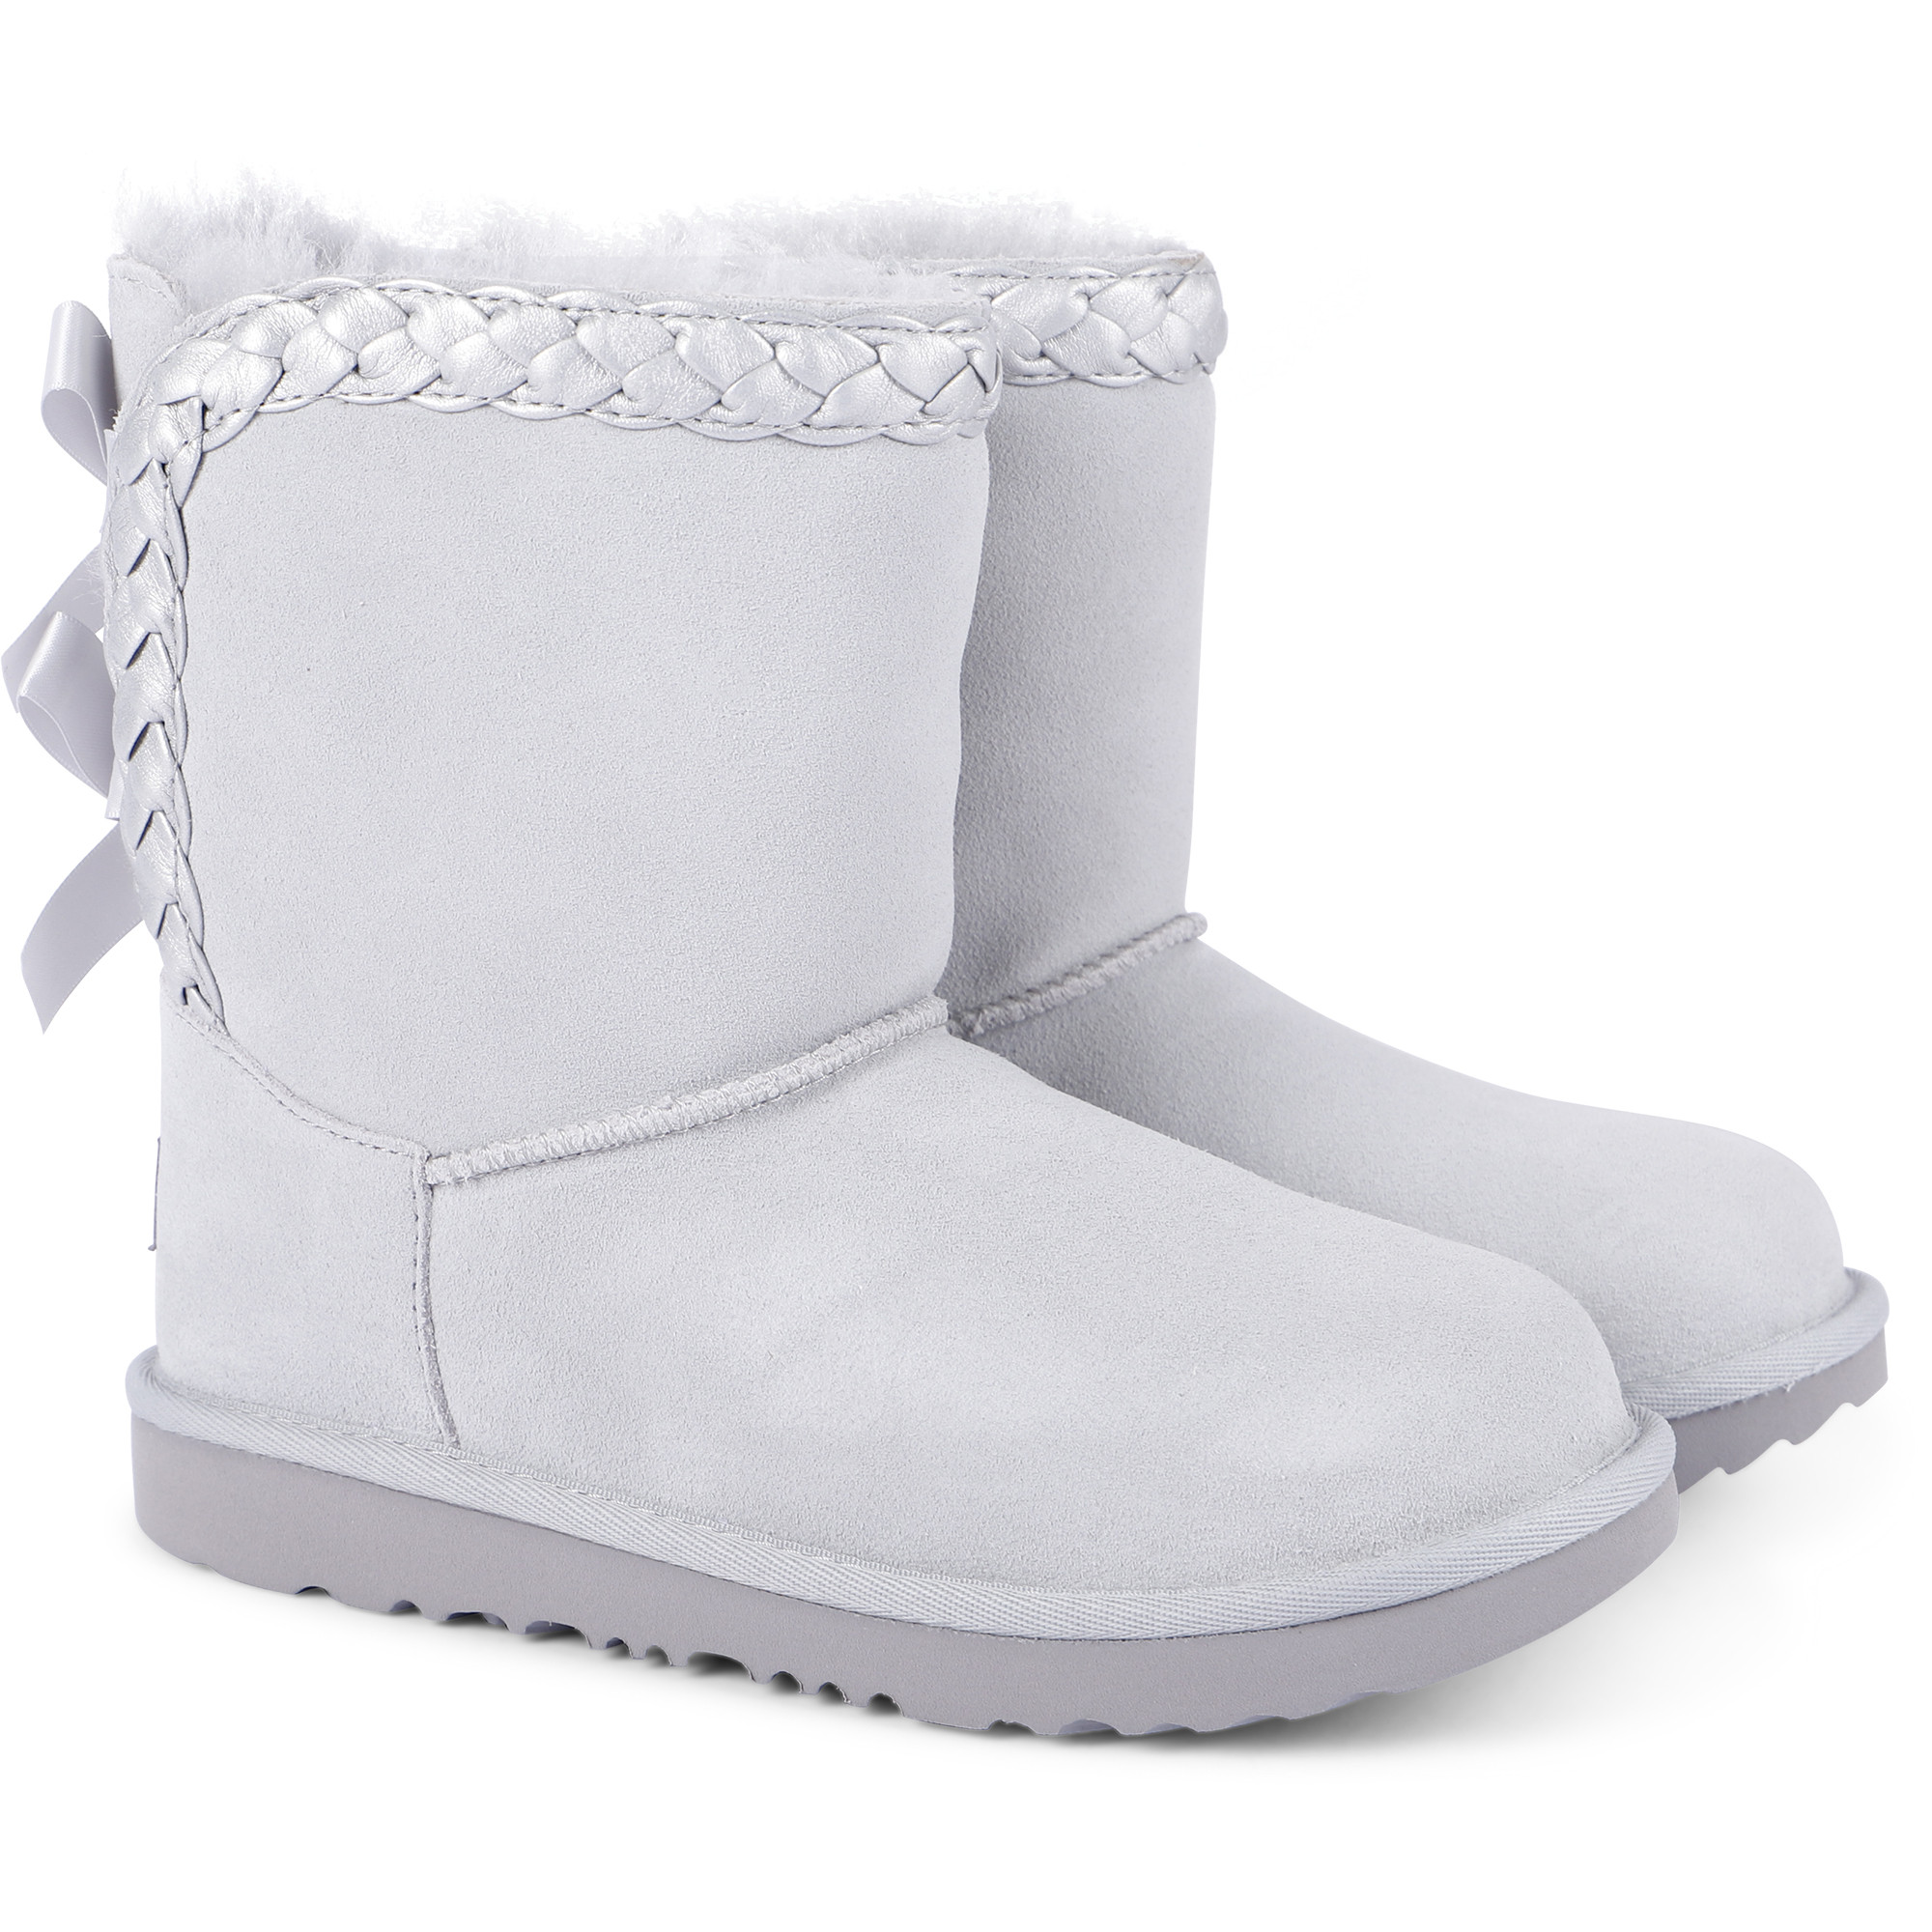 UGG Girls Braided Suede Boots in Light